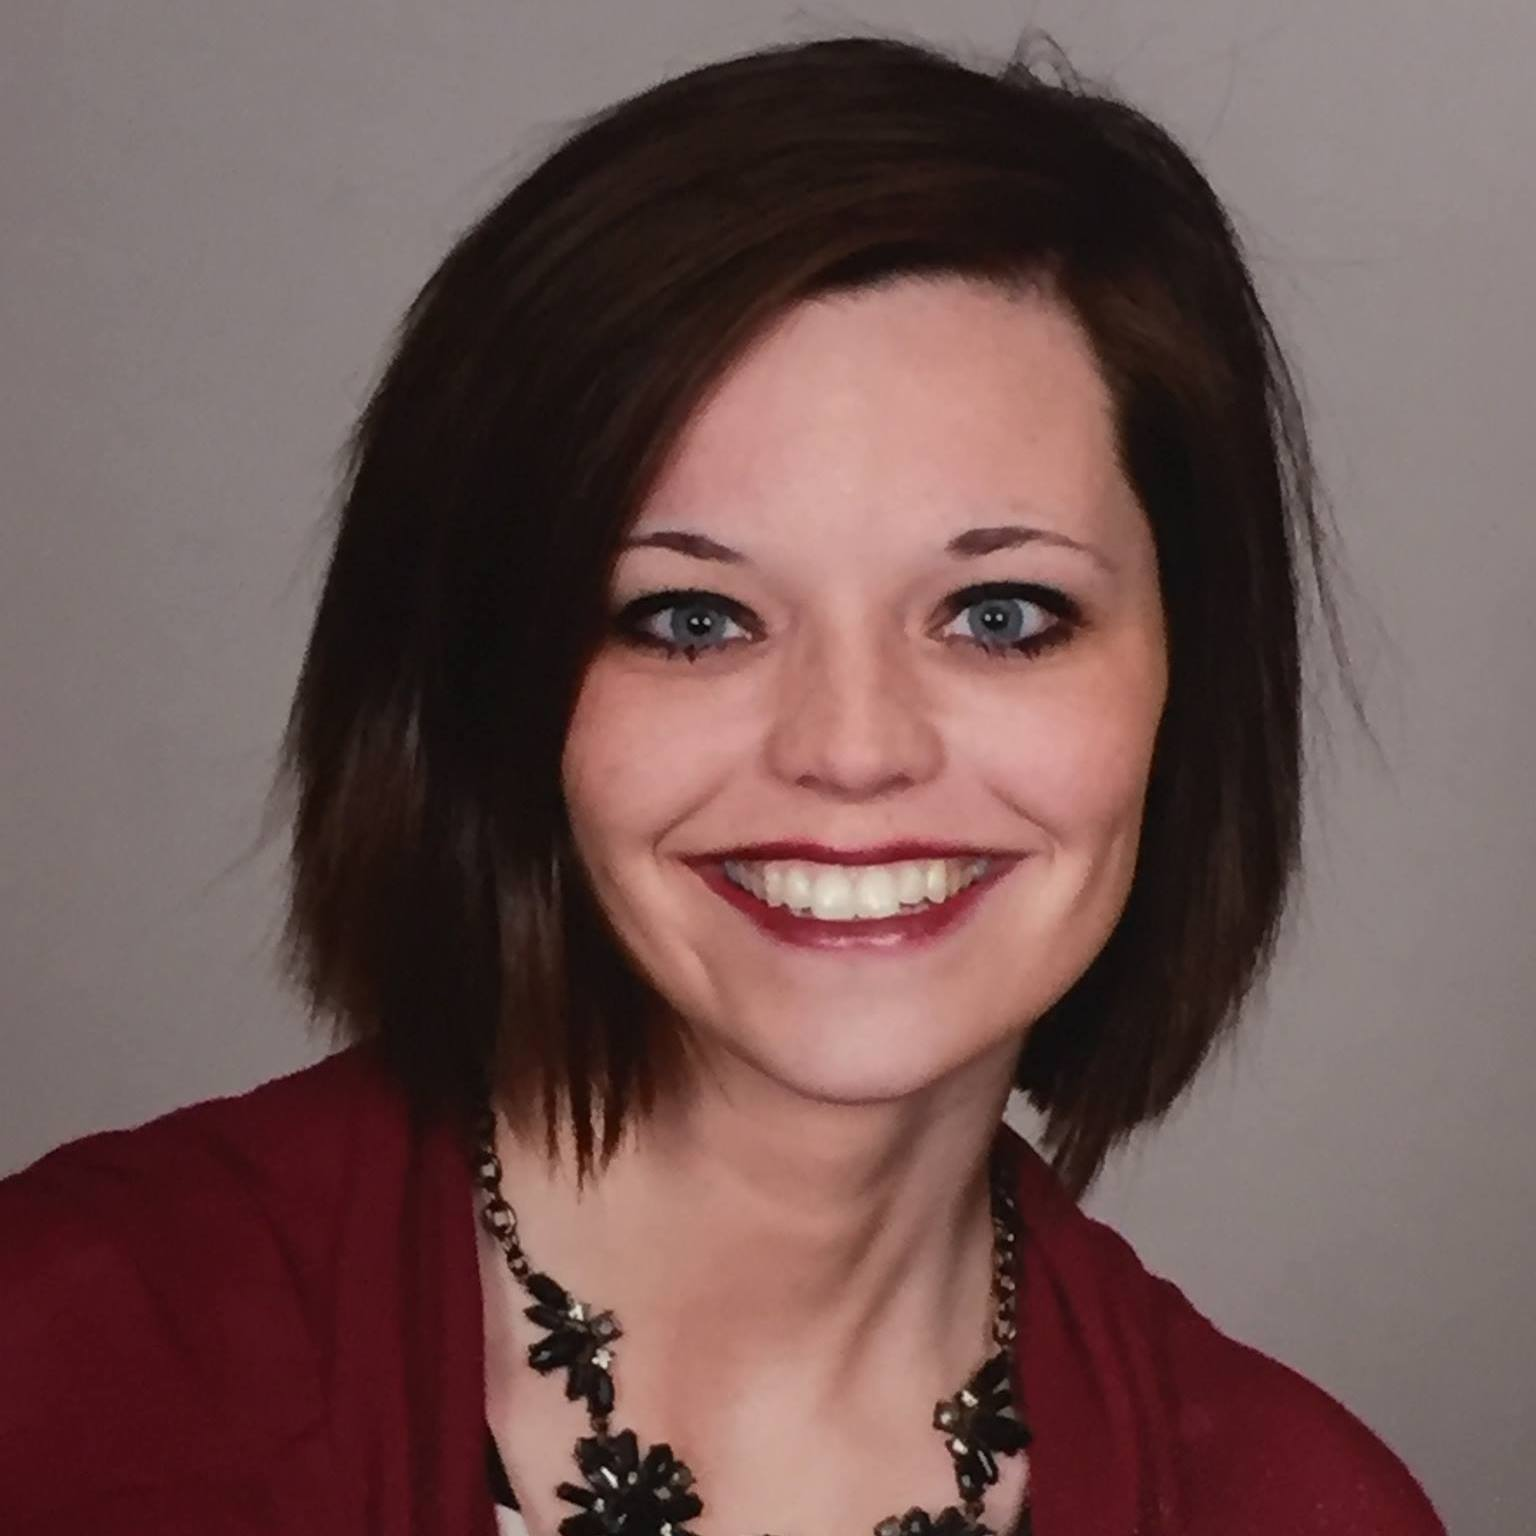 Shannon O'Leary - Shannon grew up in the Fargo/Moorhead area. She currently works as a pre-kindergarten teacher for the JPII Catholic Schools Network. She loves reading, art, and spending time with family and friends. Shannon serves as the chapter administrator.